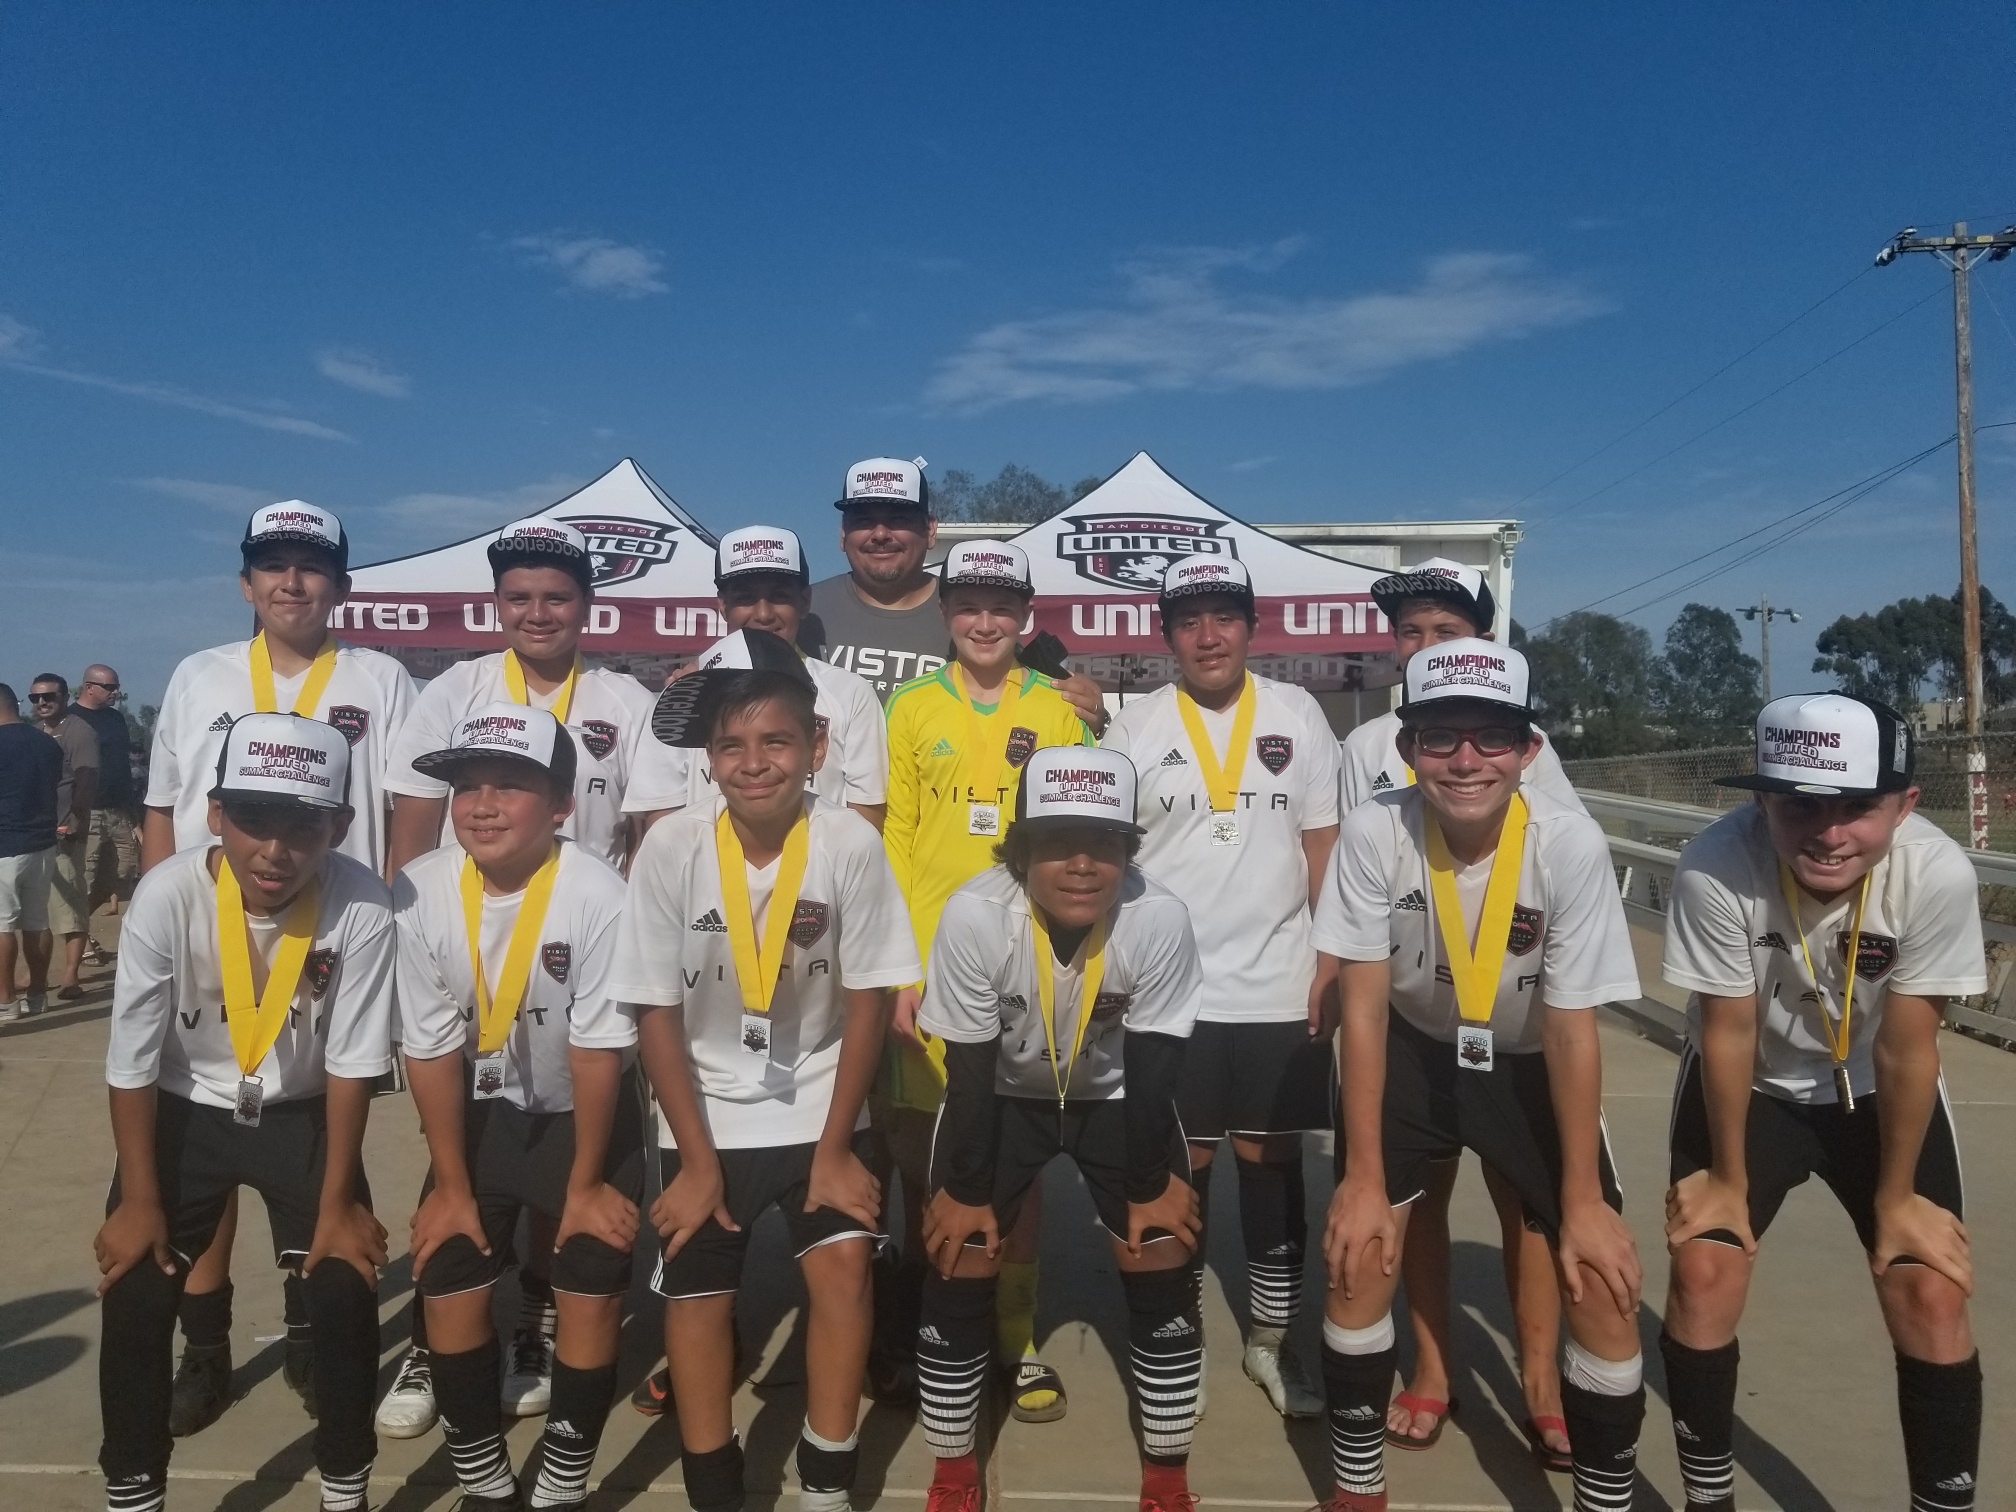 2005 Boys Are SD United Summer Challenge Champions